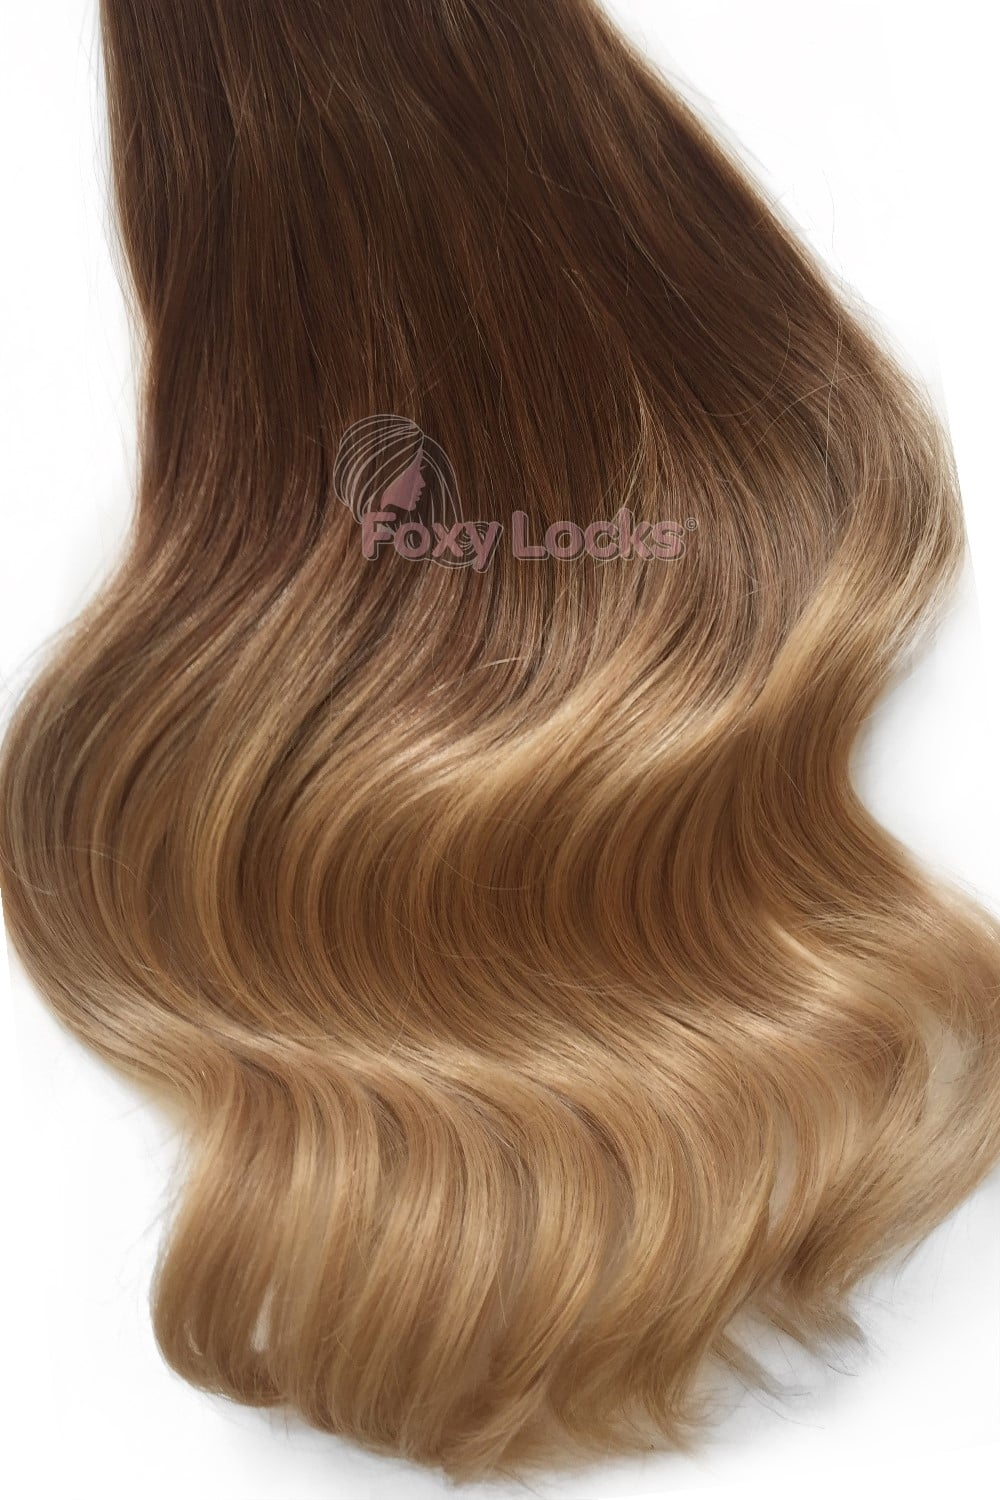 Honey Spice Ombre Regular 18 Clip In Human Hair Extensions 125g